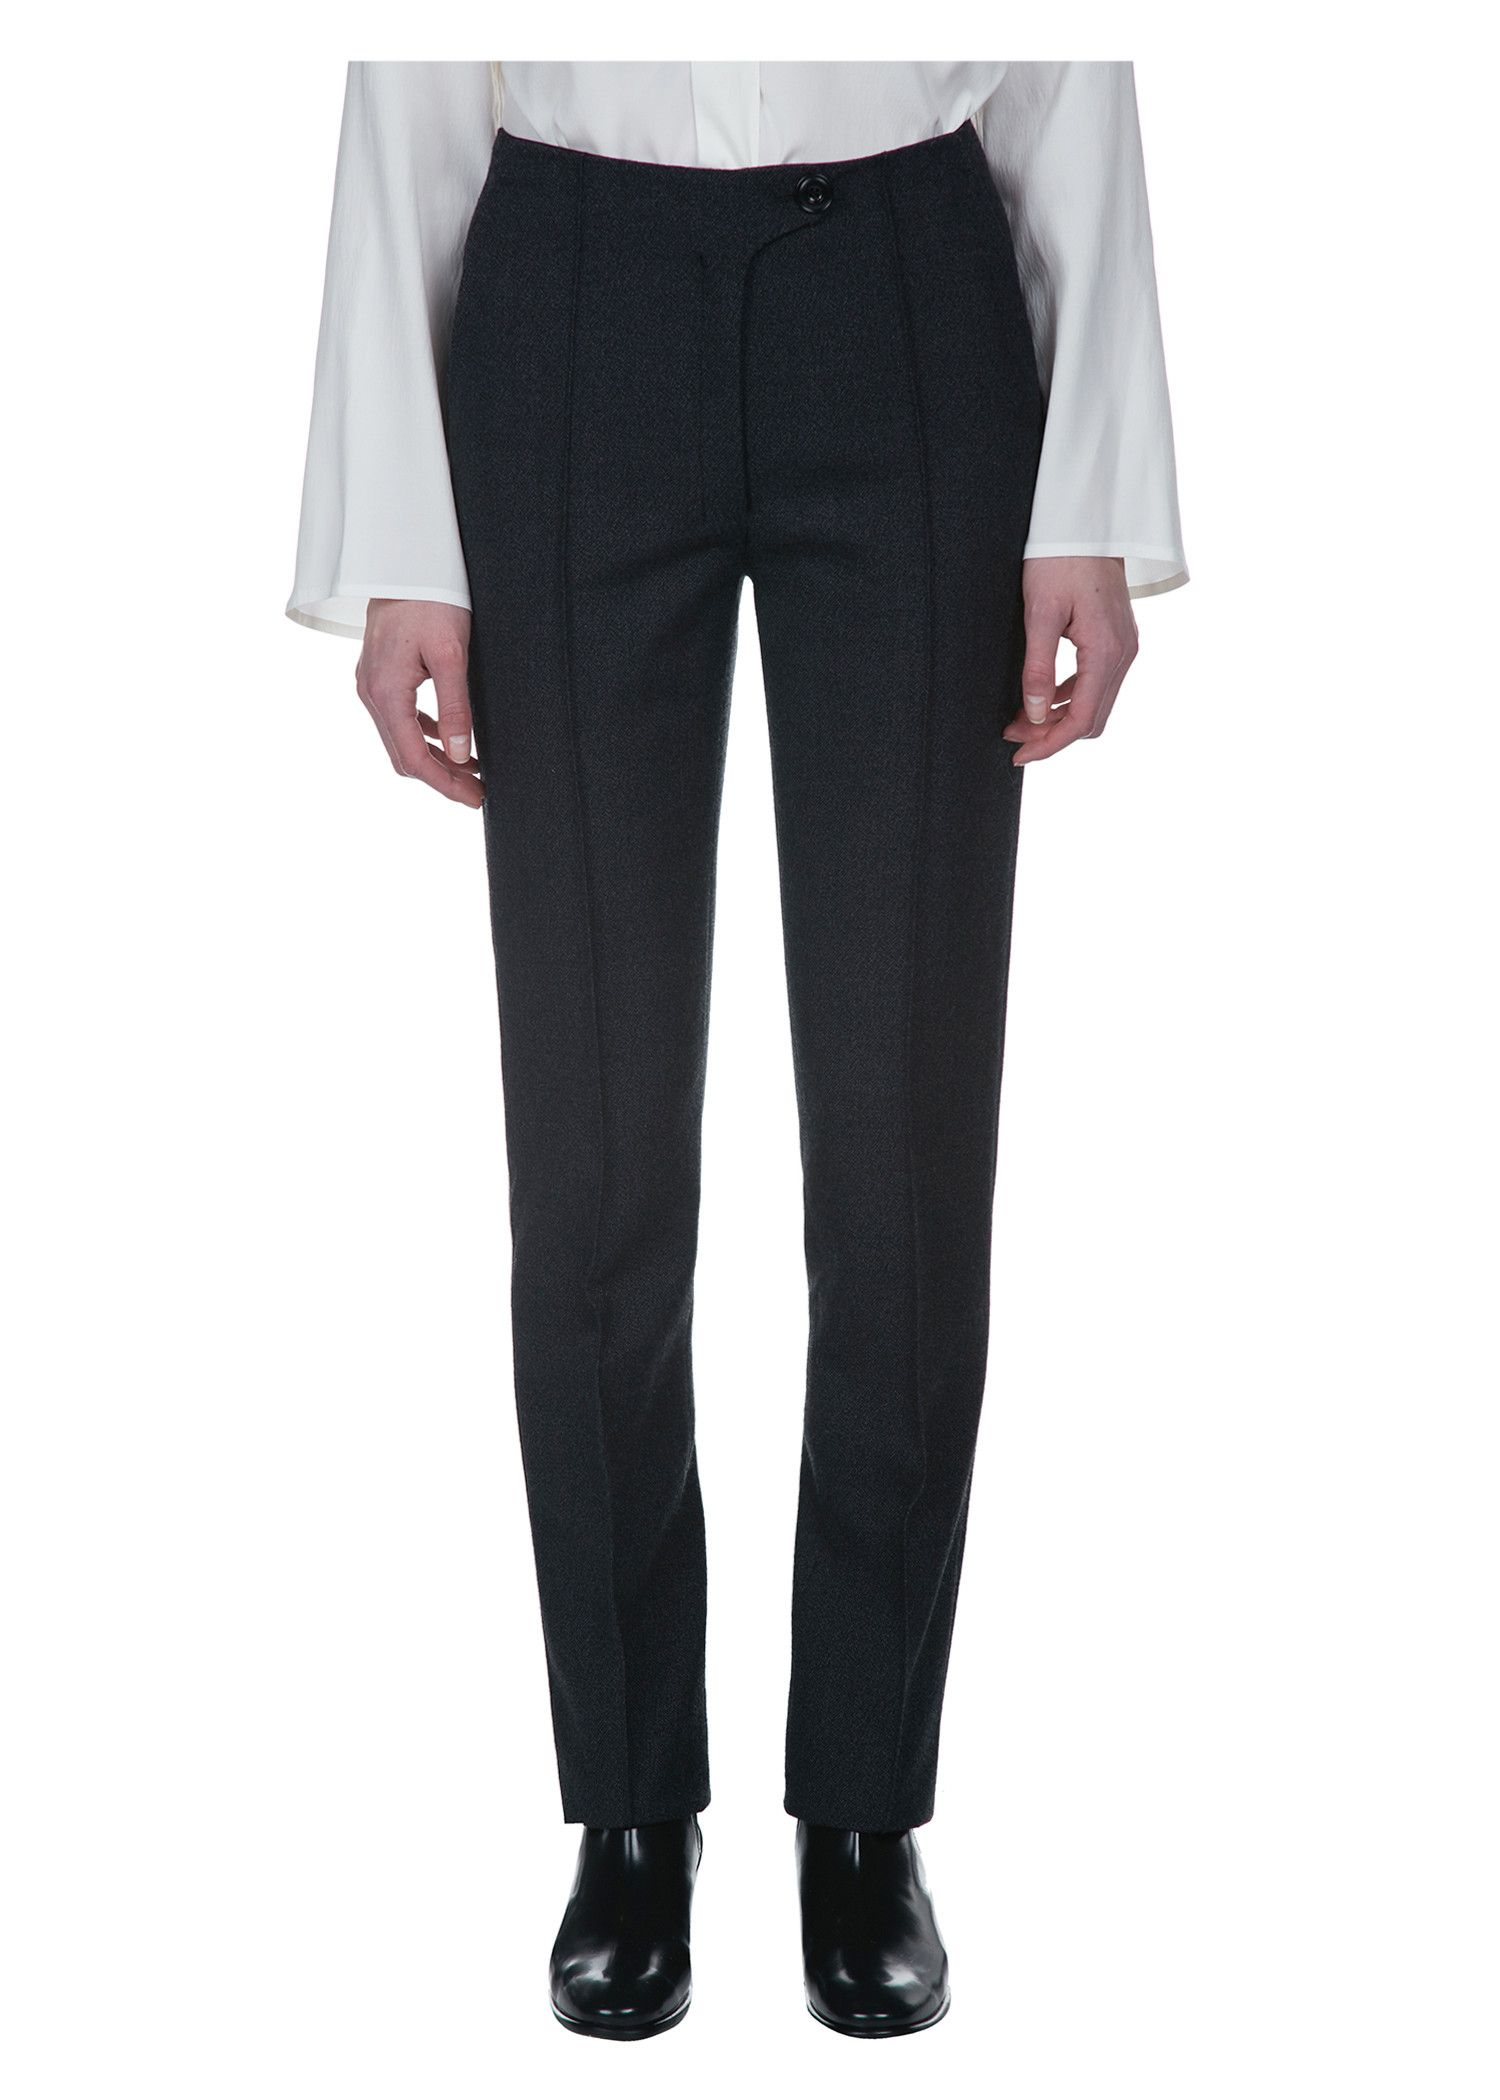 Pleated Wide-leg Wool Pants - Black Christophe Lemaire View Sale Online Discount Online Best Seller For Sale Sast Fast Shipping QWG2KjQ